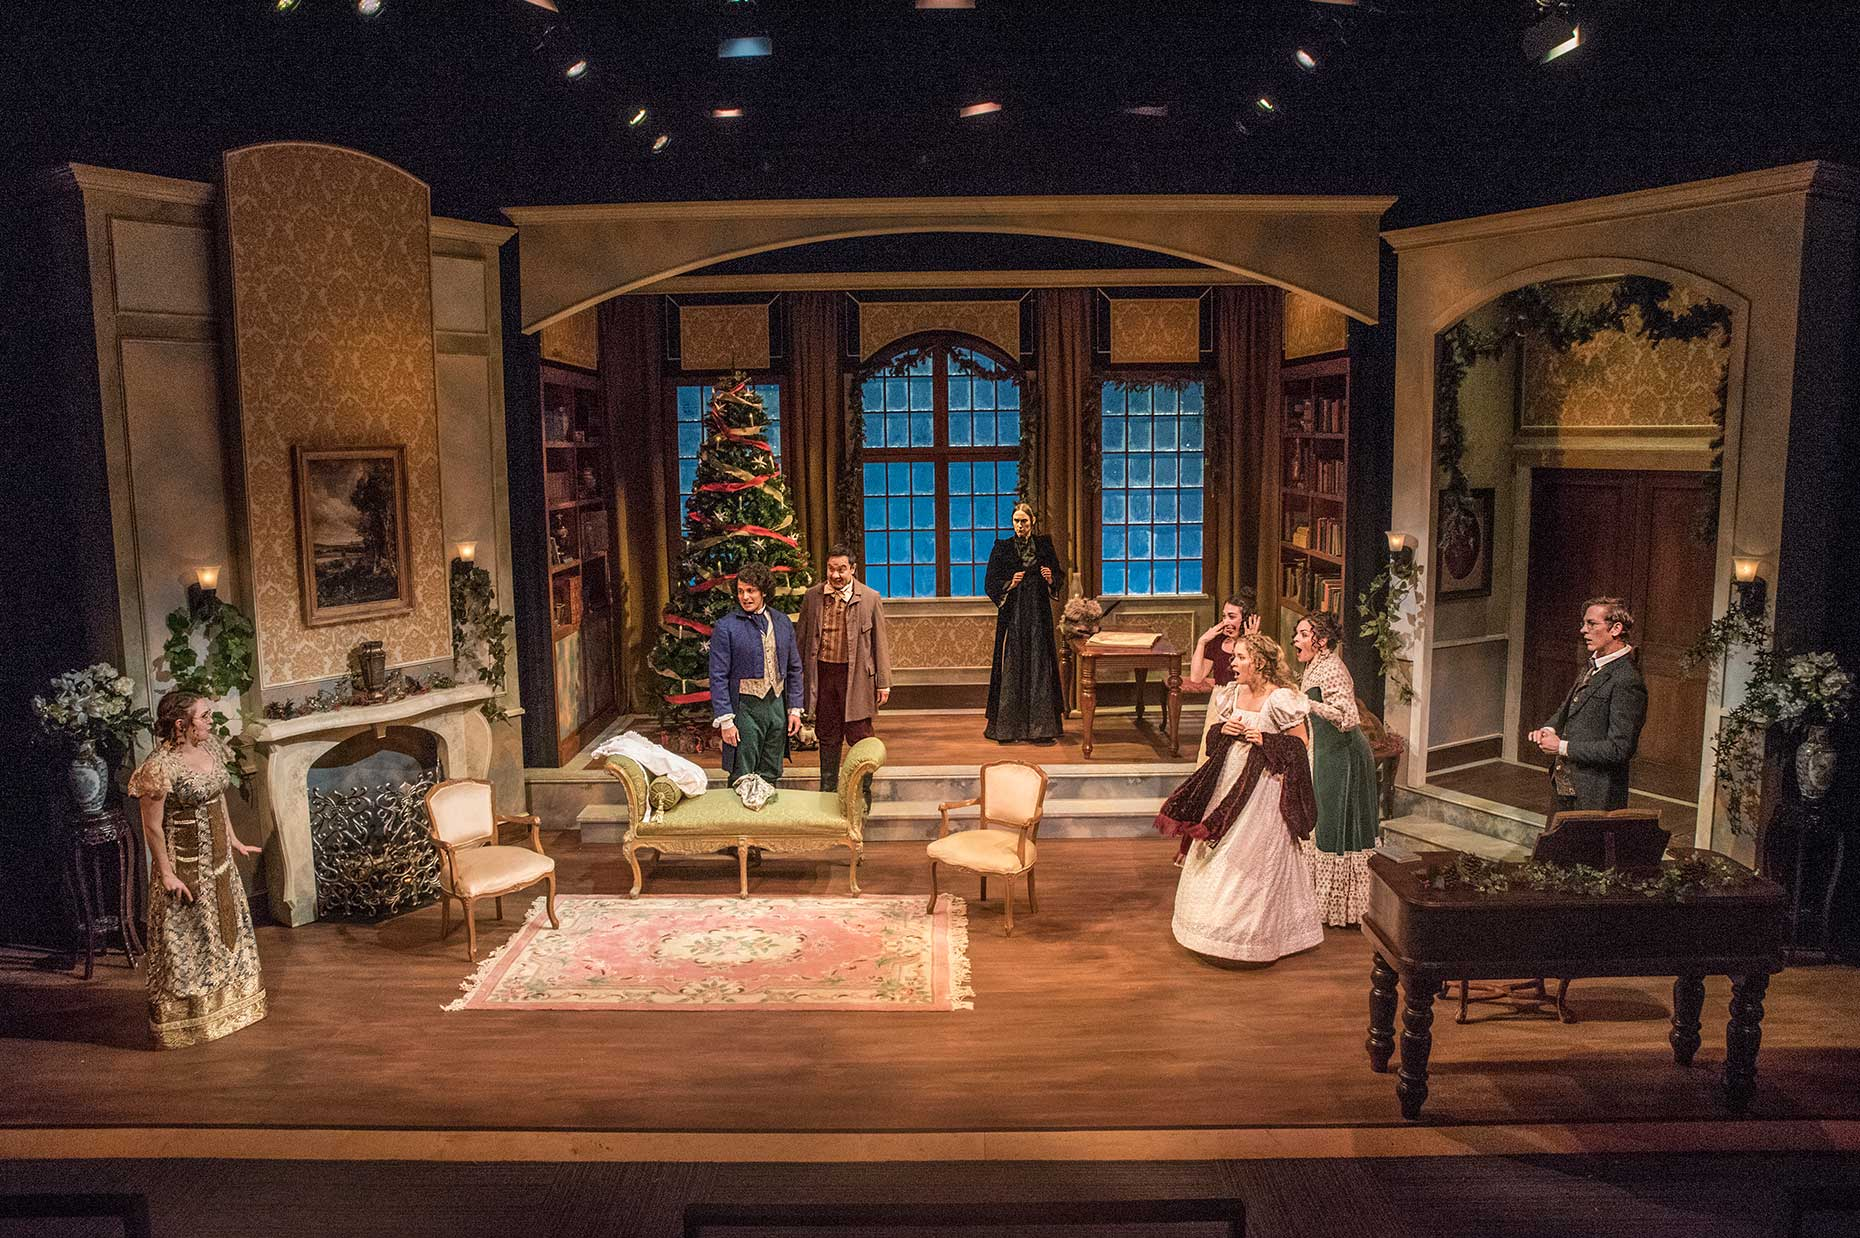 rick-barbour-director-miss-bennet-christmas-at-pemberley-boulder-ensemble-theatre-01